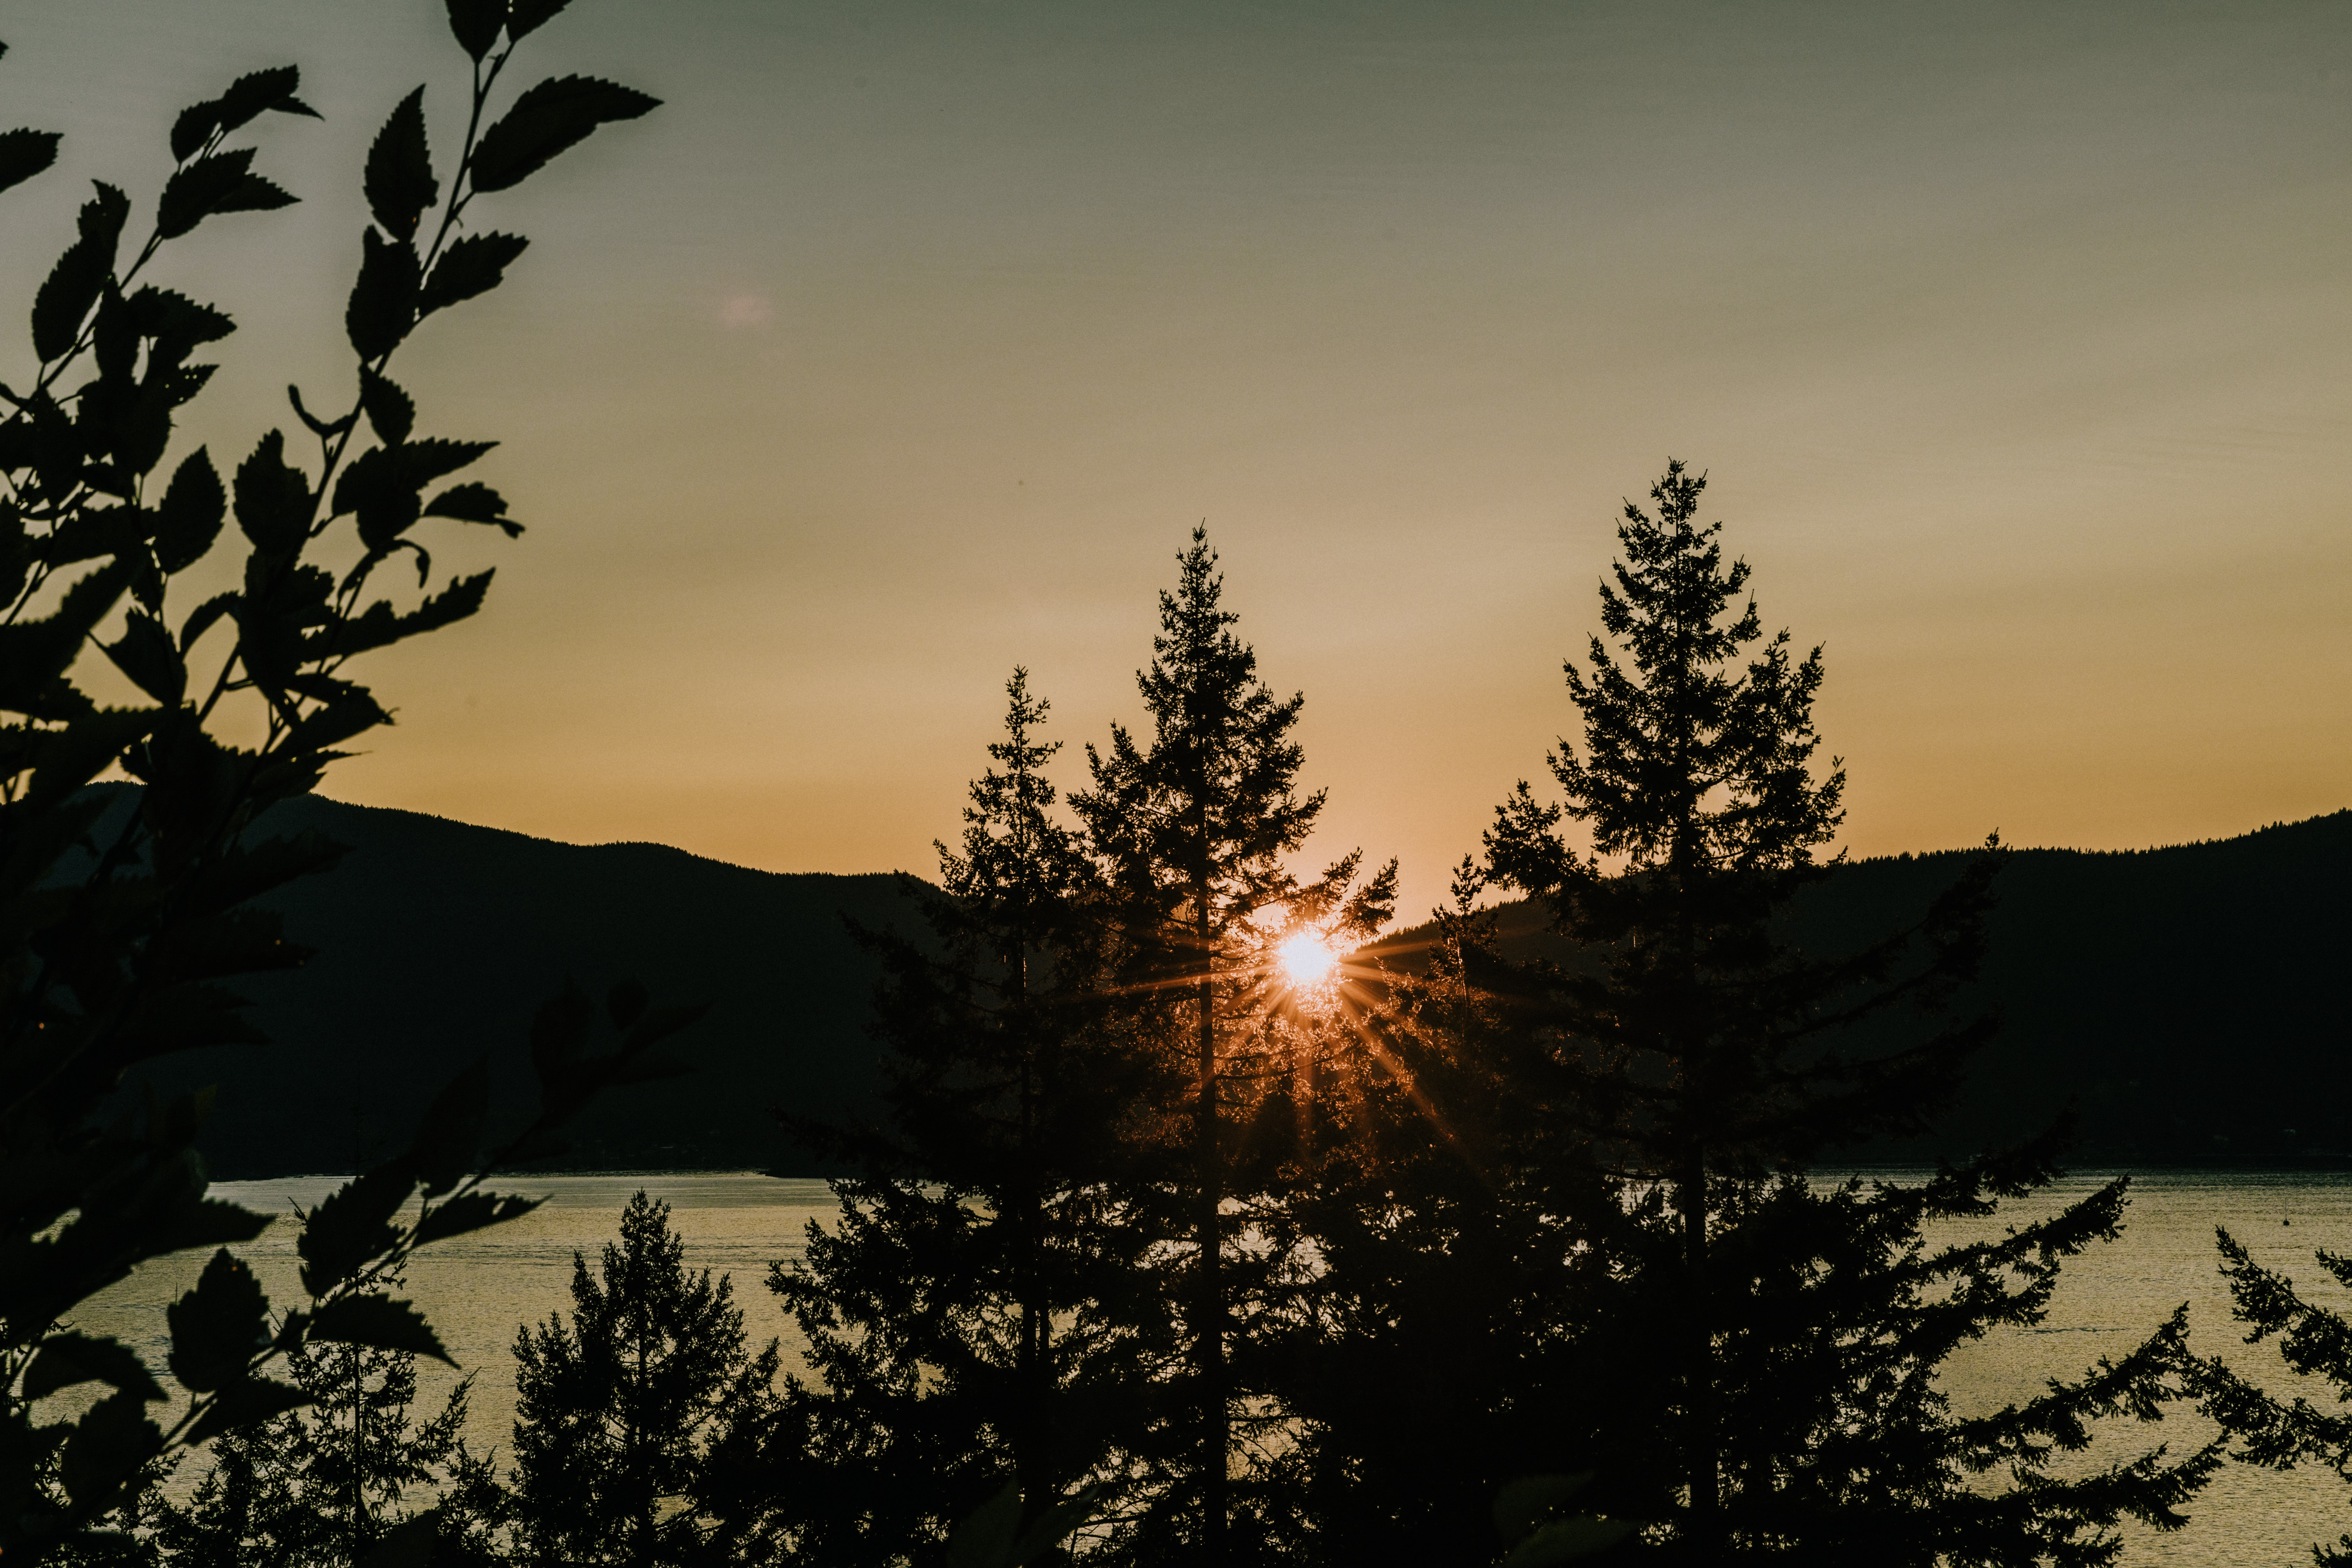 tree near body of water and mountain range under golden hour silhouette